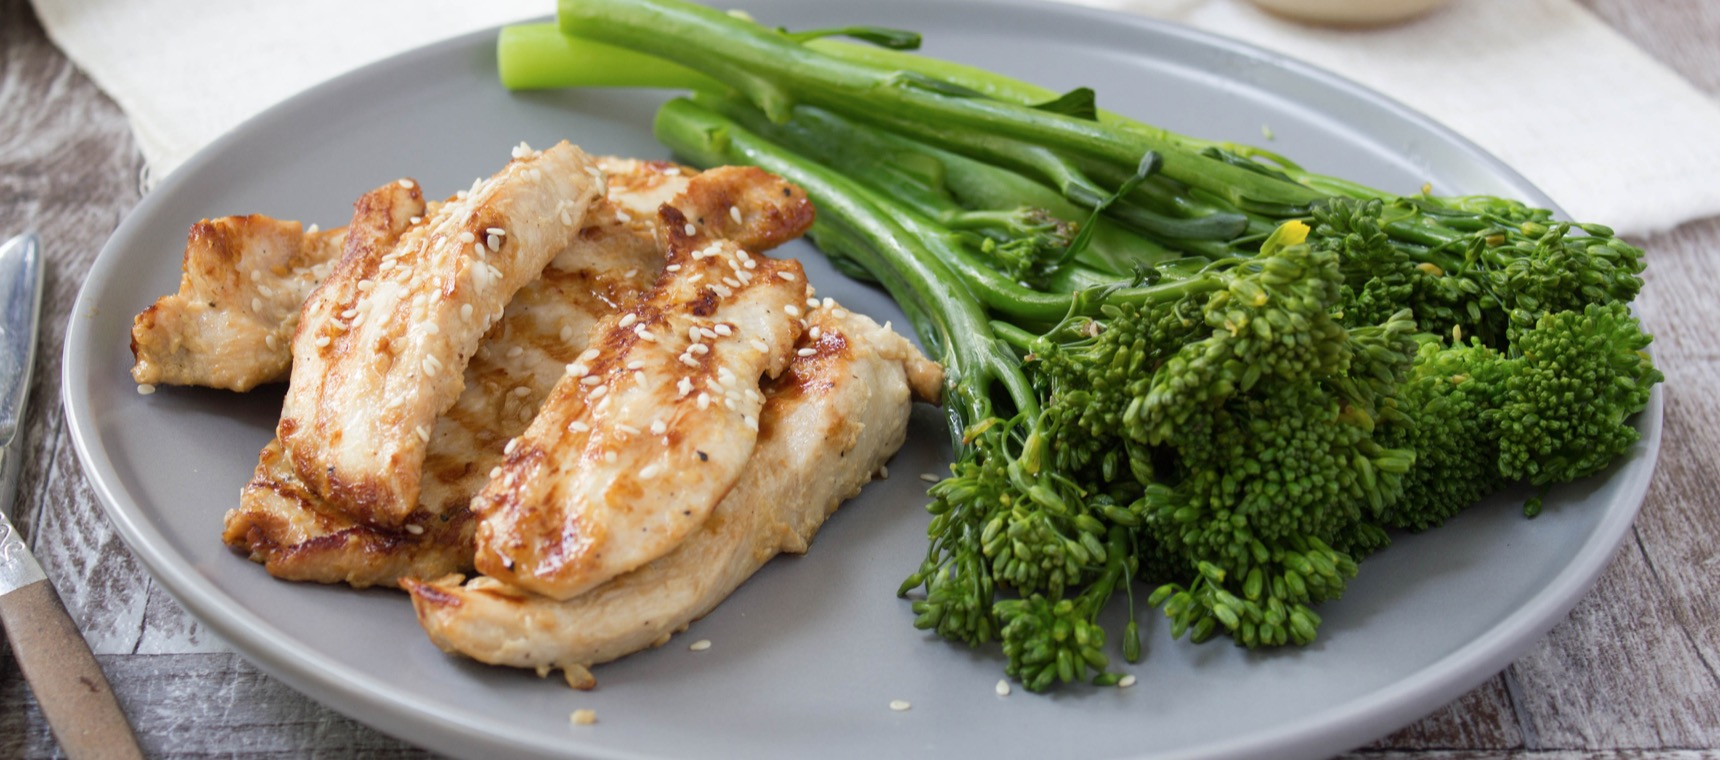 Grilled Sesame Soy Chicken with Broccolini